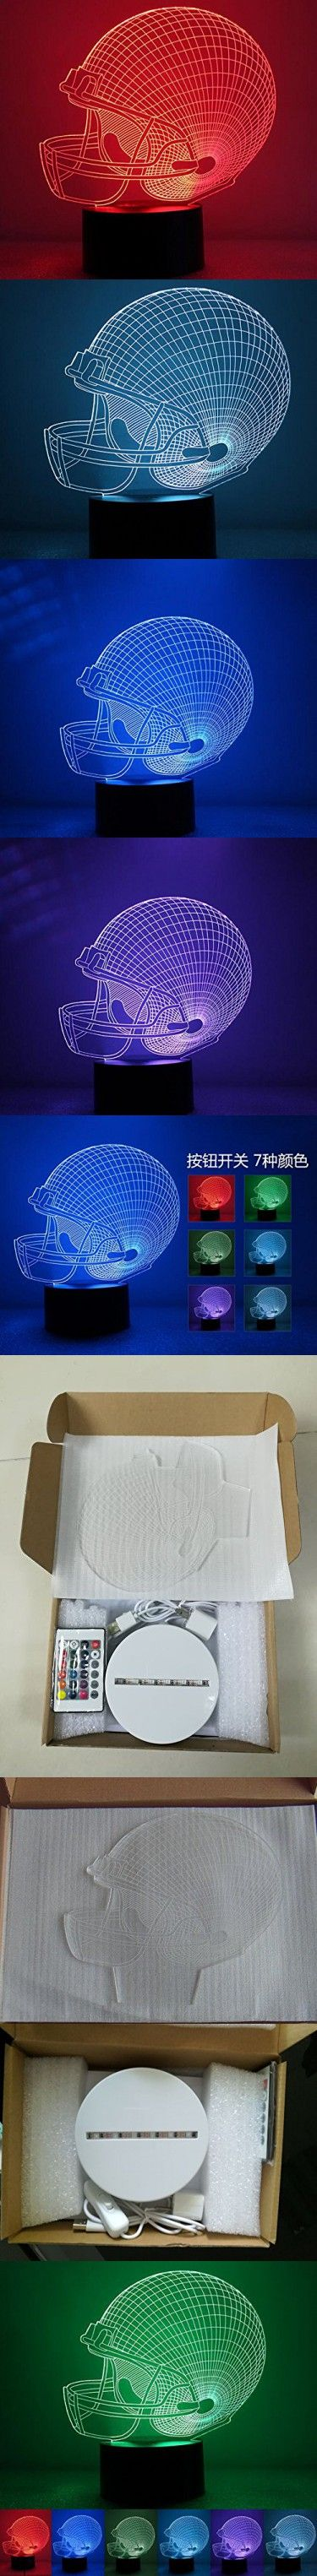 3D Led Night Light 7 Colors Football Cap Table Lamp for Christmas Gifts Home Decor